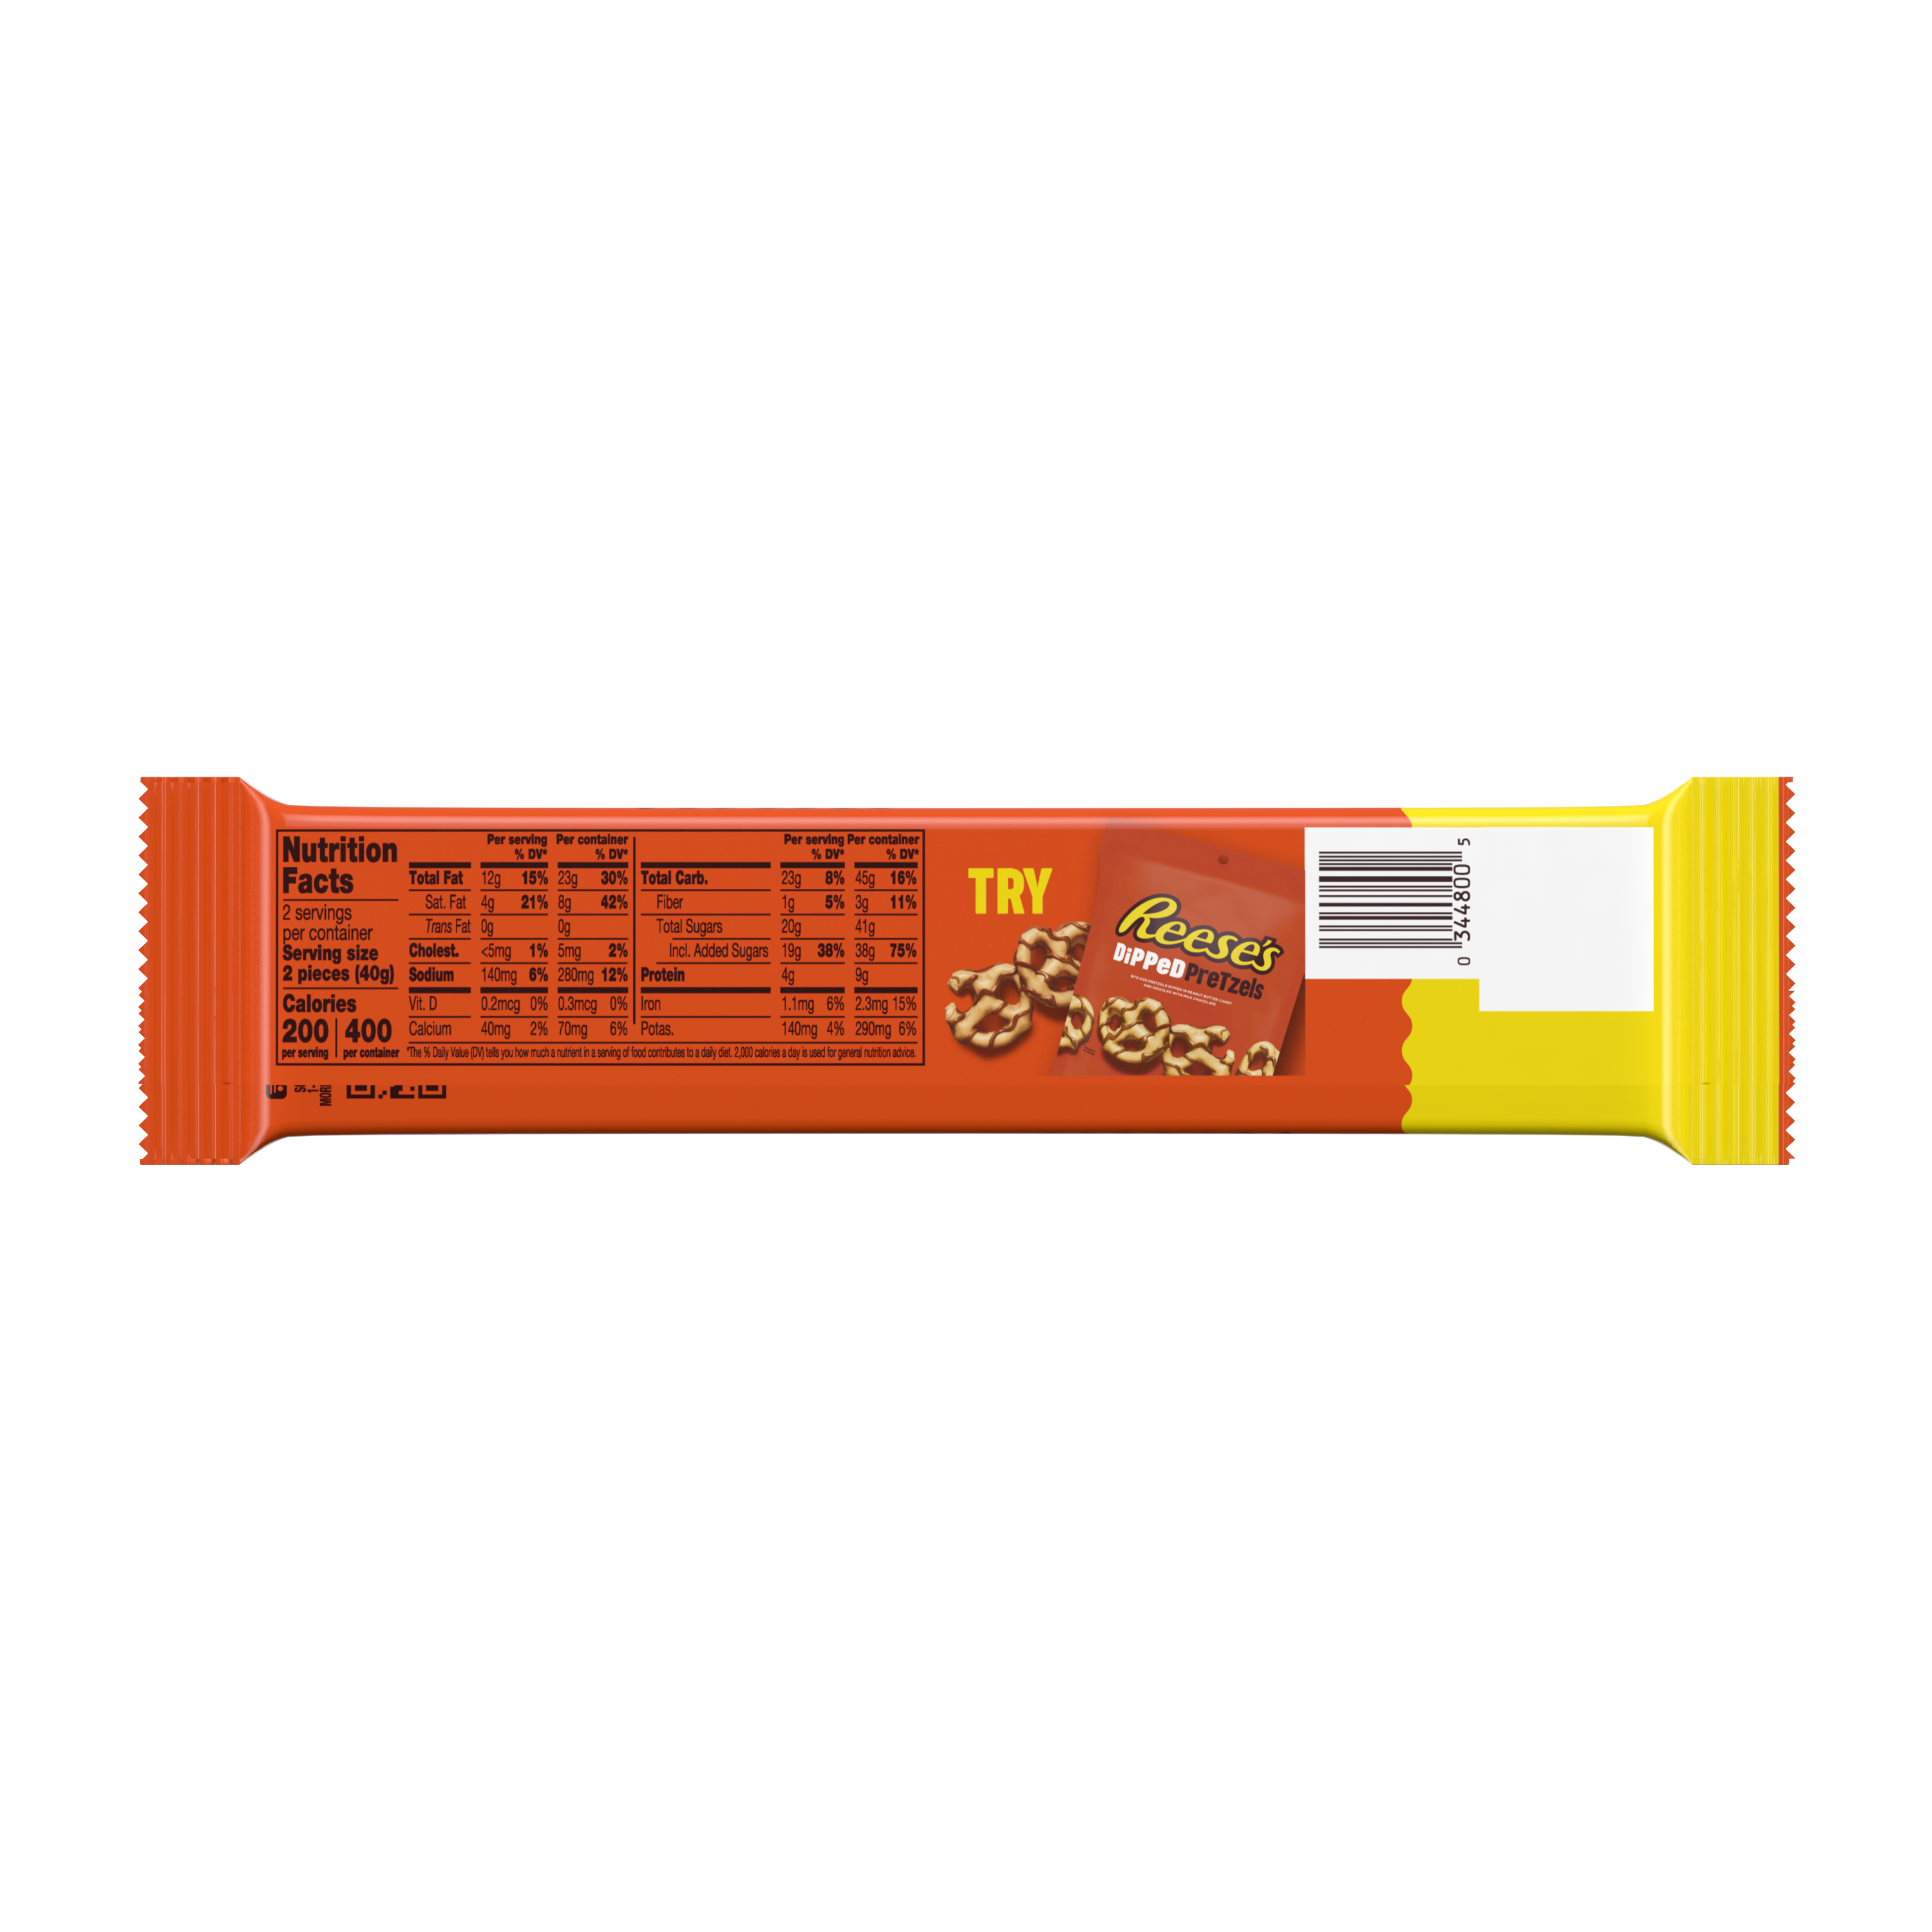 REESE'S Milk Chocolate King Size Peanut Butter Cups, 2.8 oz - Back of Package